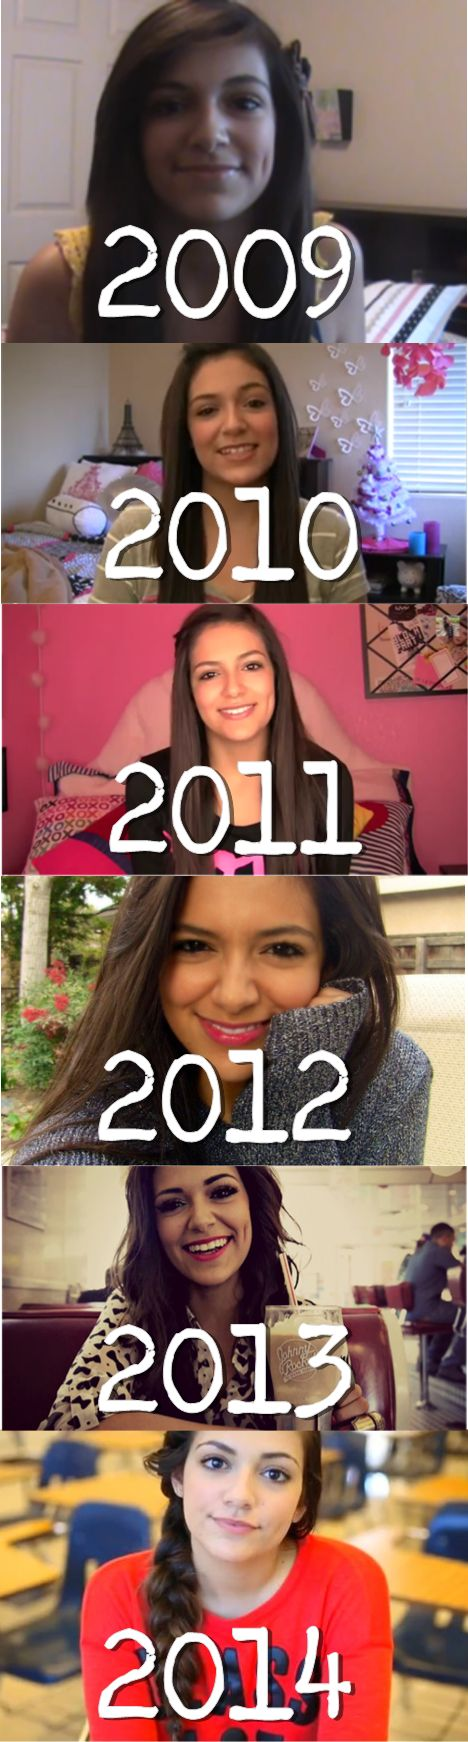 MOTAFAM, LISTEN UP: NEW IDEA: BETHANY MOTA SHOULD BE PRESIDENT!!! WHO'S WITH ME? #BETHSHOULDRULE